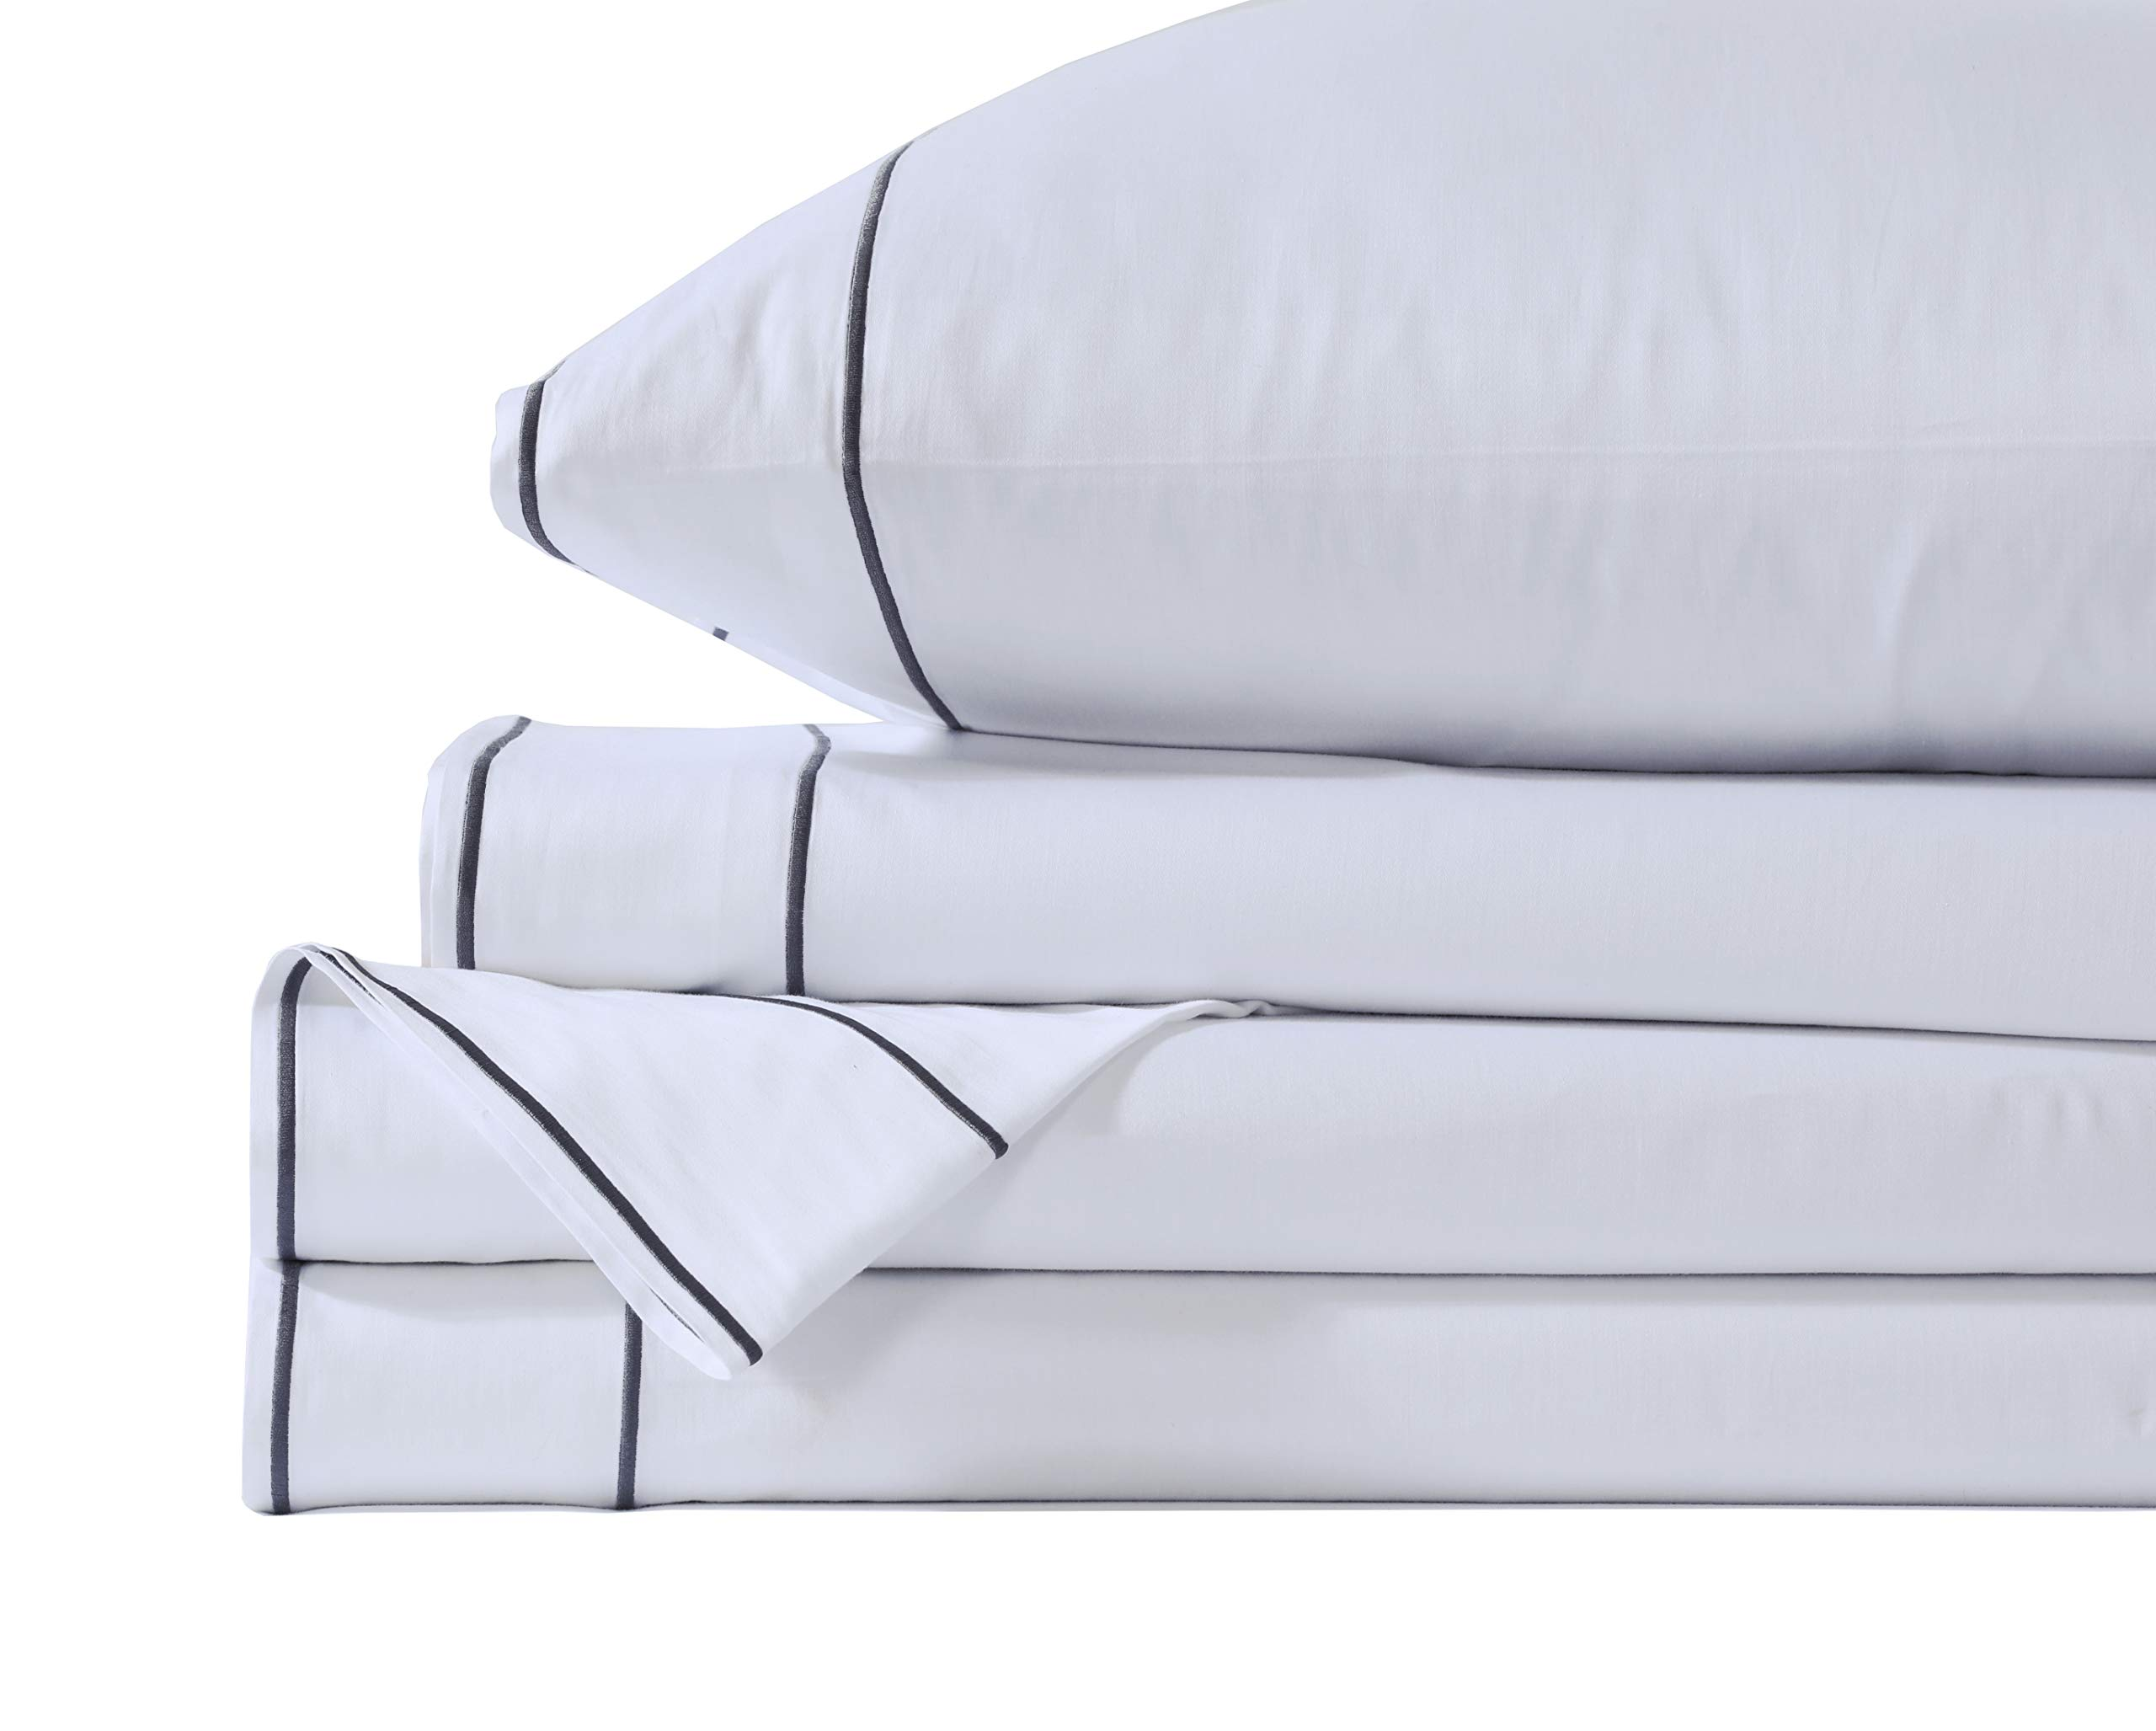 Lasimonne 400 Thread Count Cotton Sheet Sets, 100% Pure Combed Cotton Stylish Hotel Stitch Sheets, French Embroidery, Luxury Sateen Weave for Soft and Silky Feel (White with Grey Stitch, Queen)